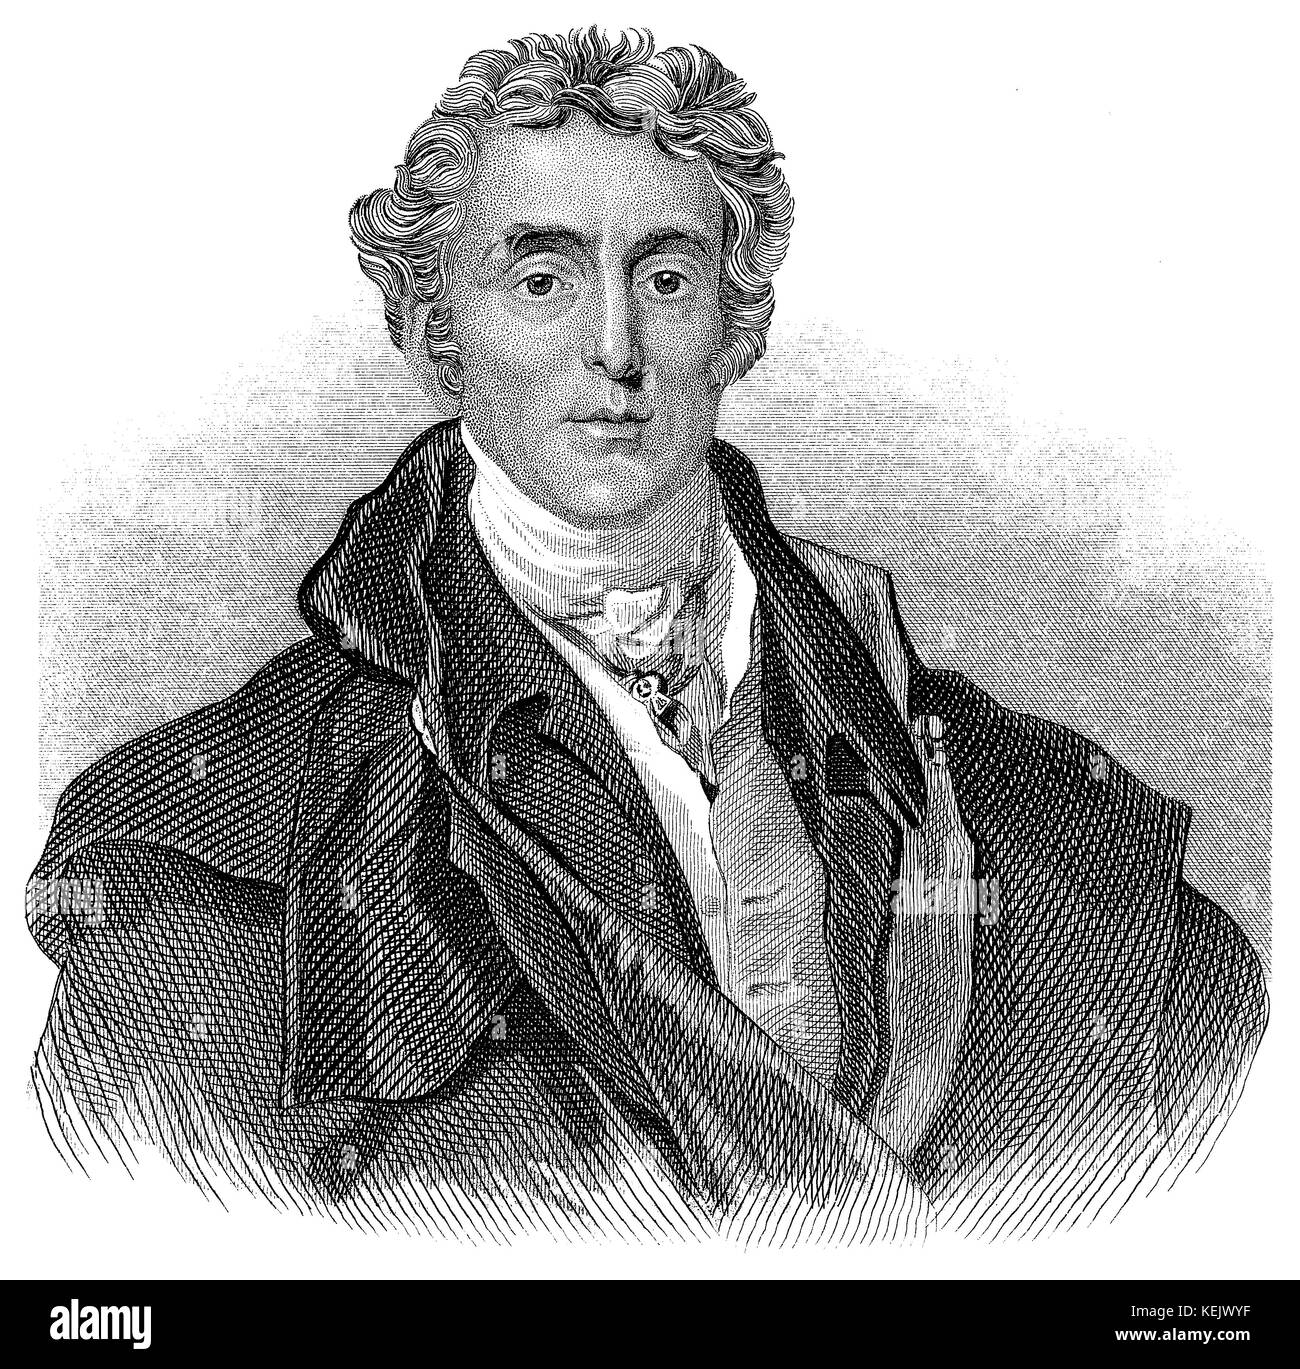 1853 engraving of Field Marshall Arthur Wellesley, 1st Duke of Wellington. - Stock Image